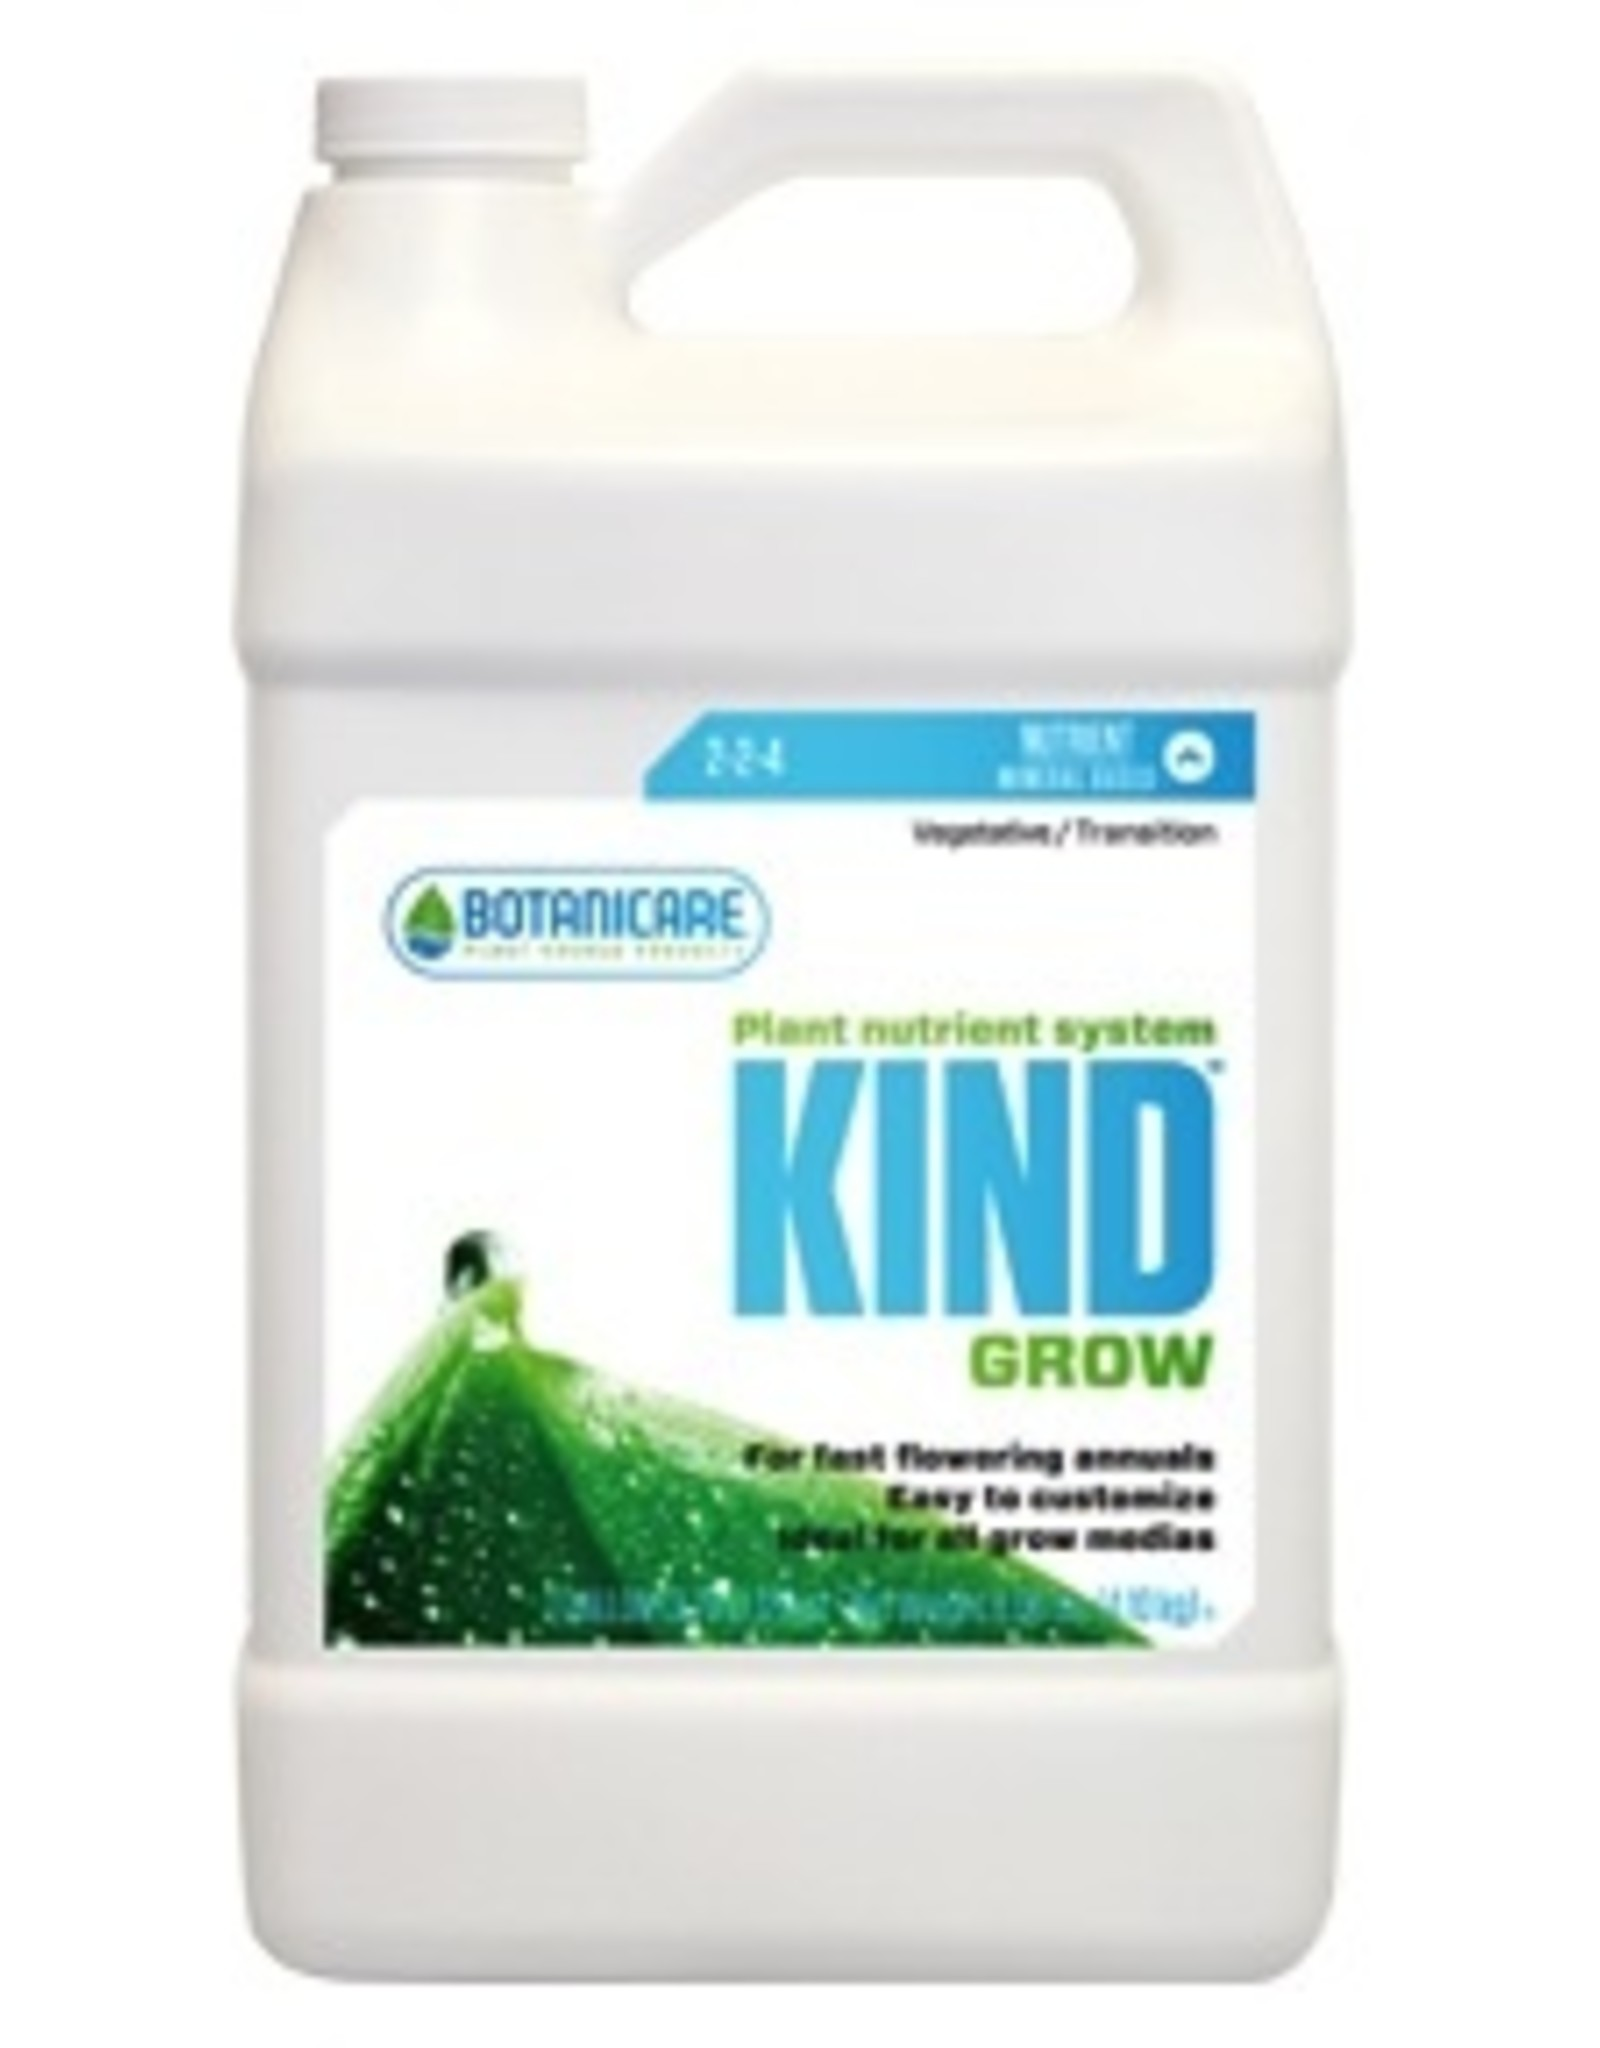 BOTANICARE Botanicare Kind Grow 1 Gallon